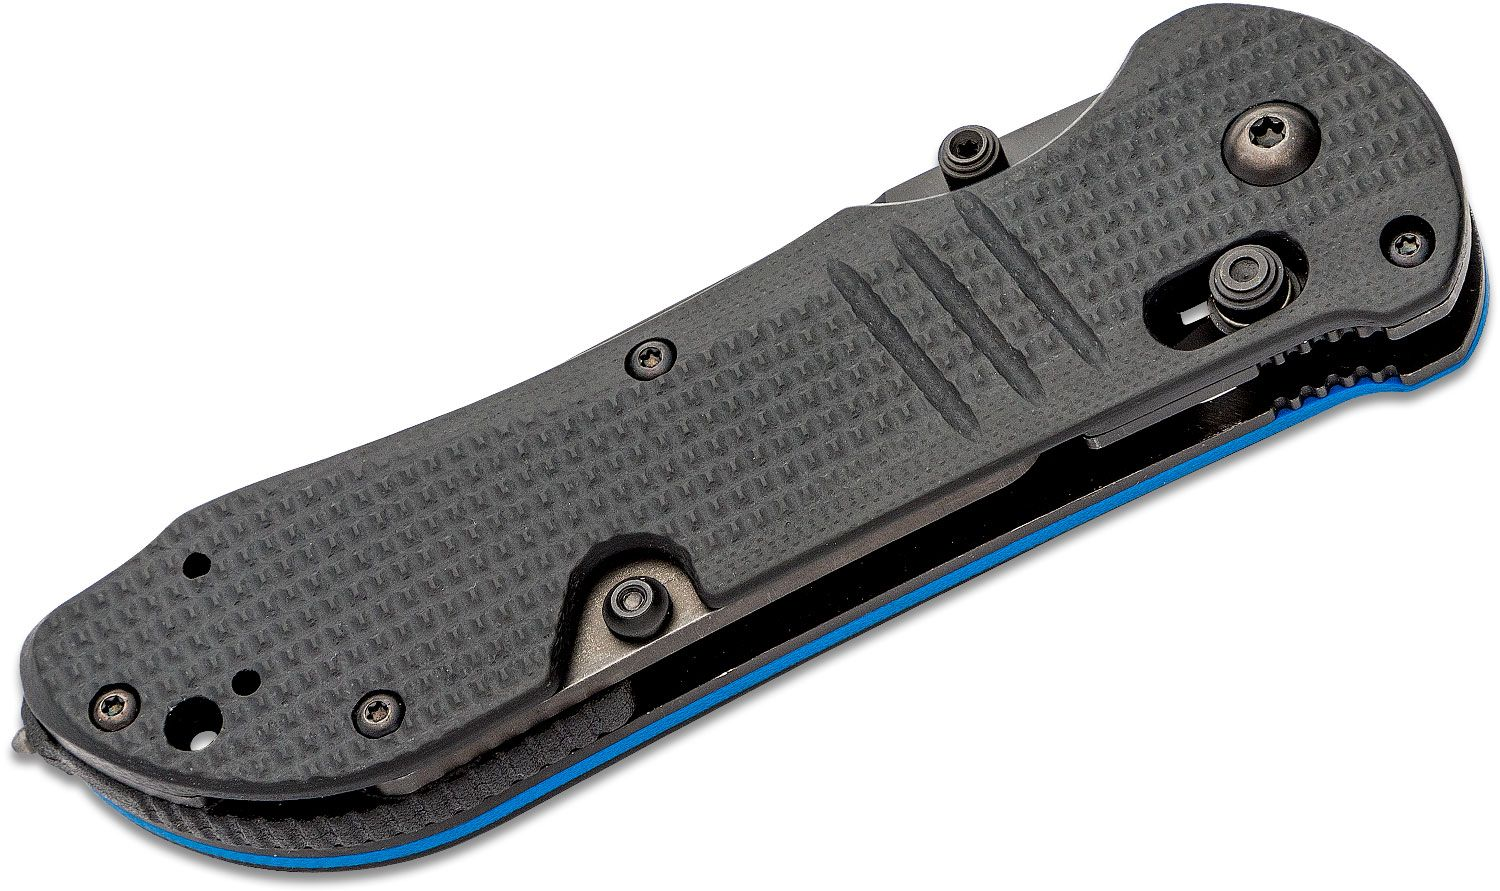 Benchmade Thin Blue Line Tactical Triage shown closed left profile